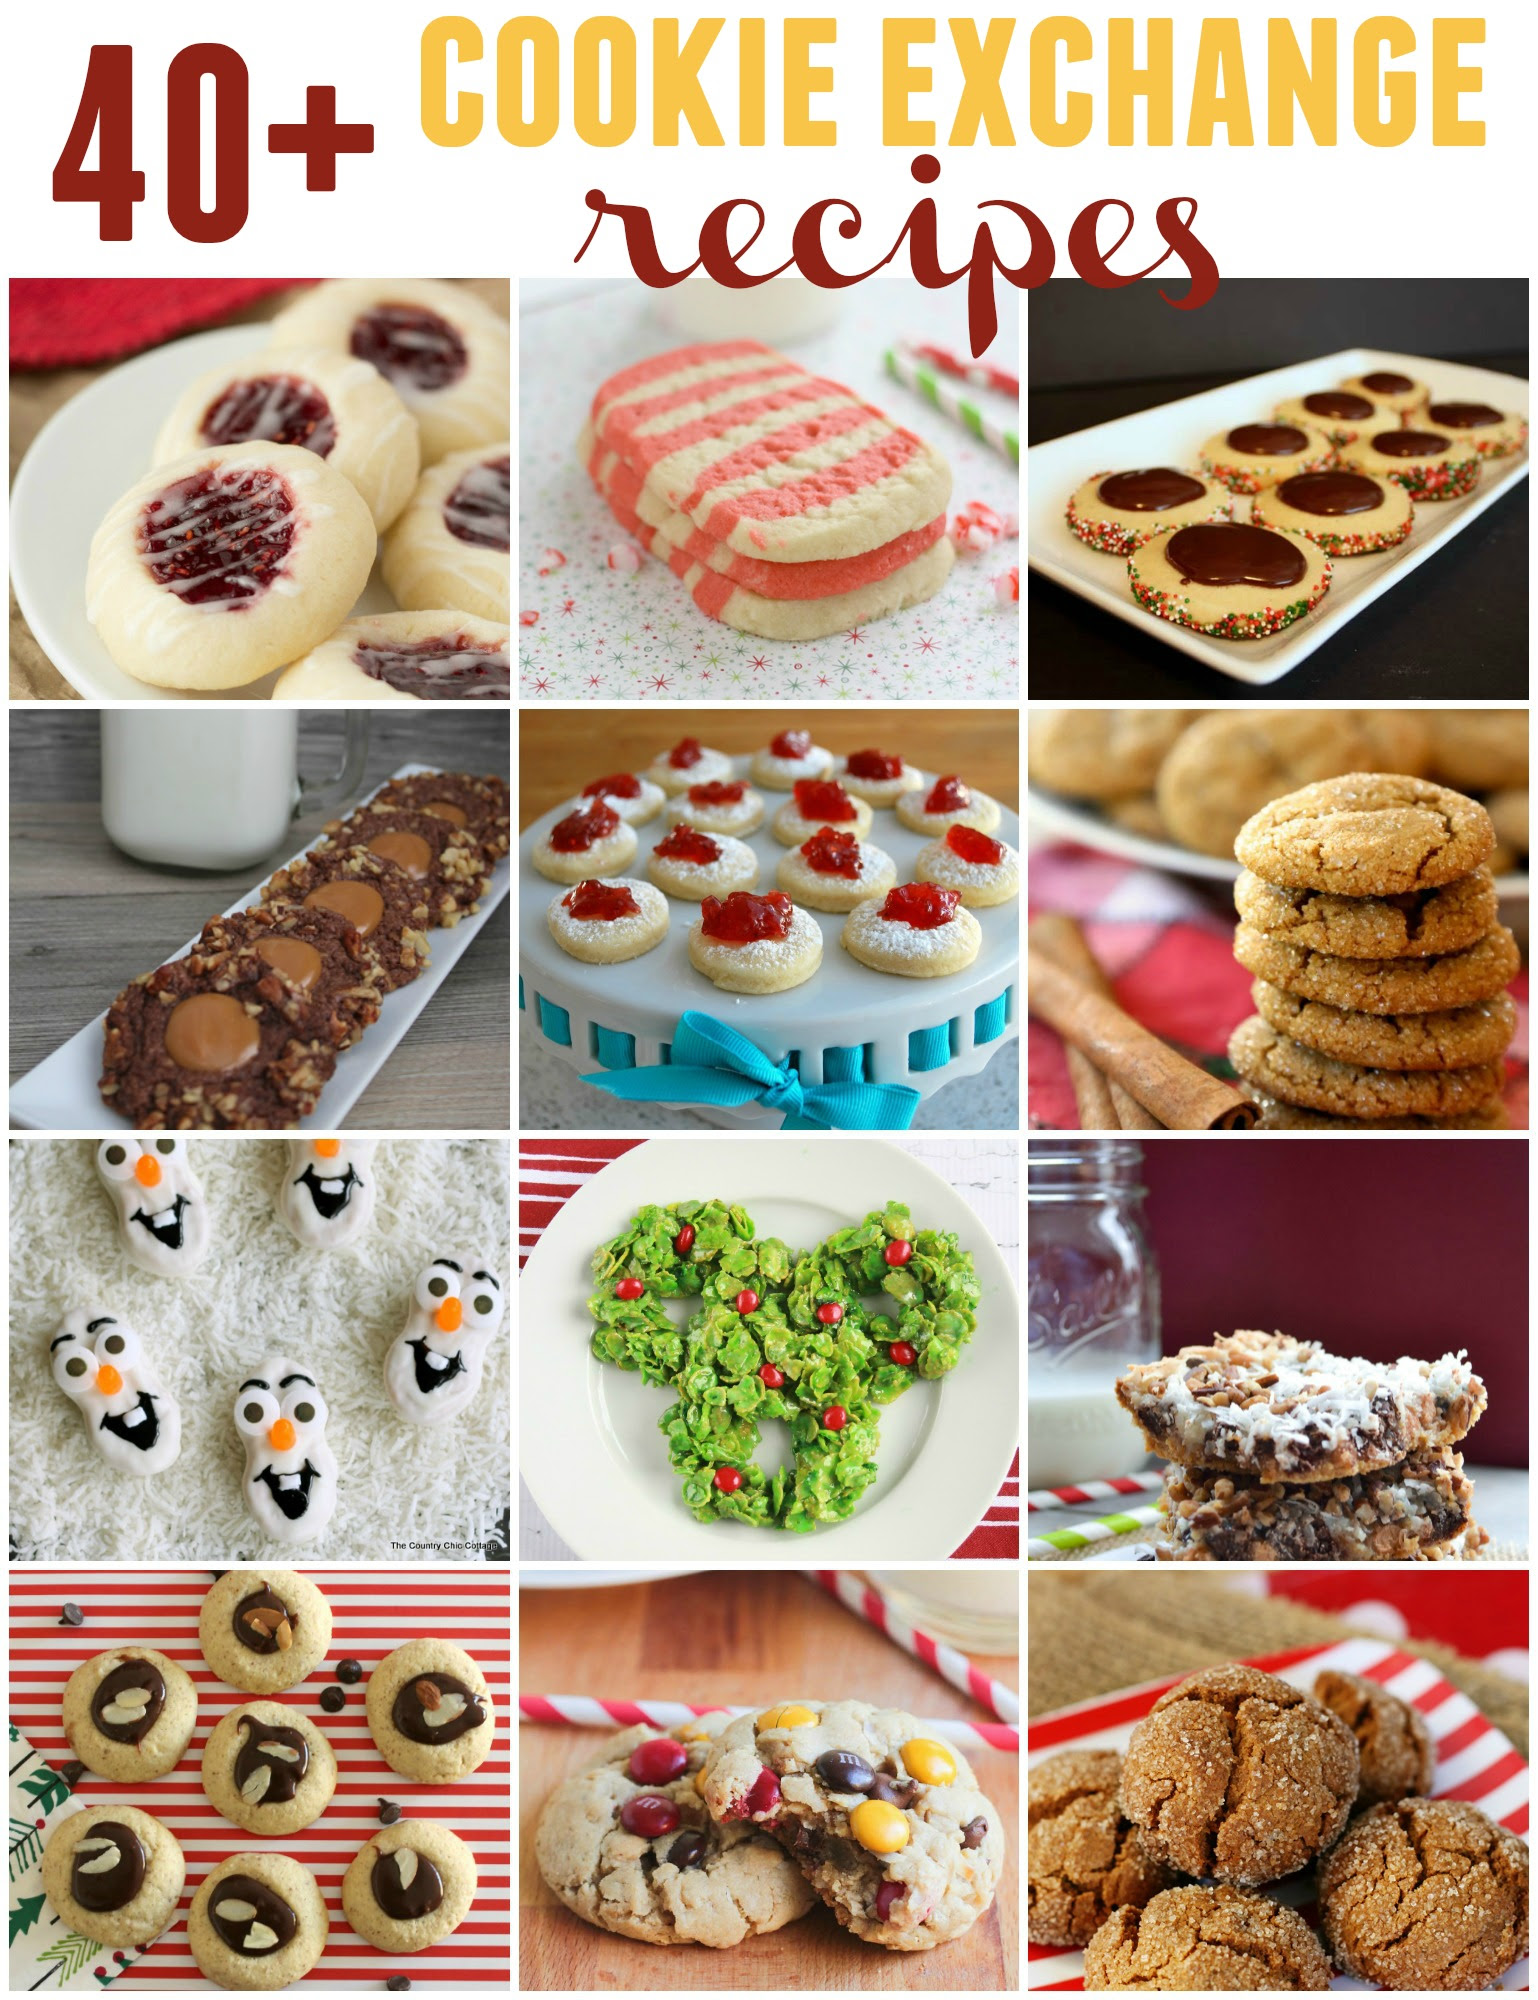 40+ cookie exchange recipes